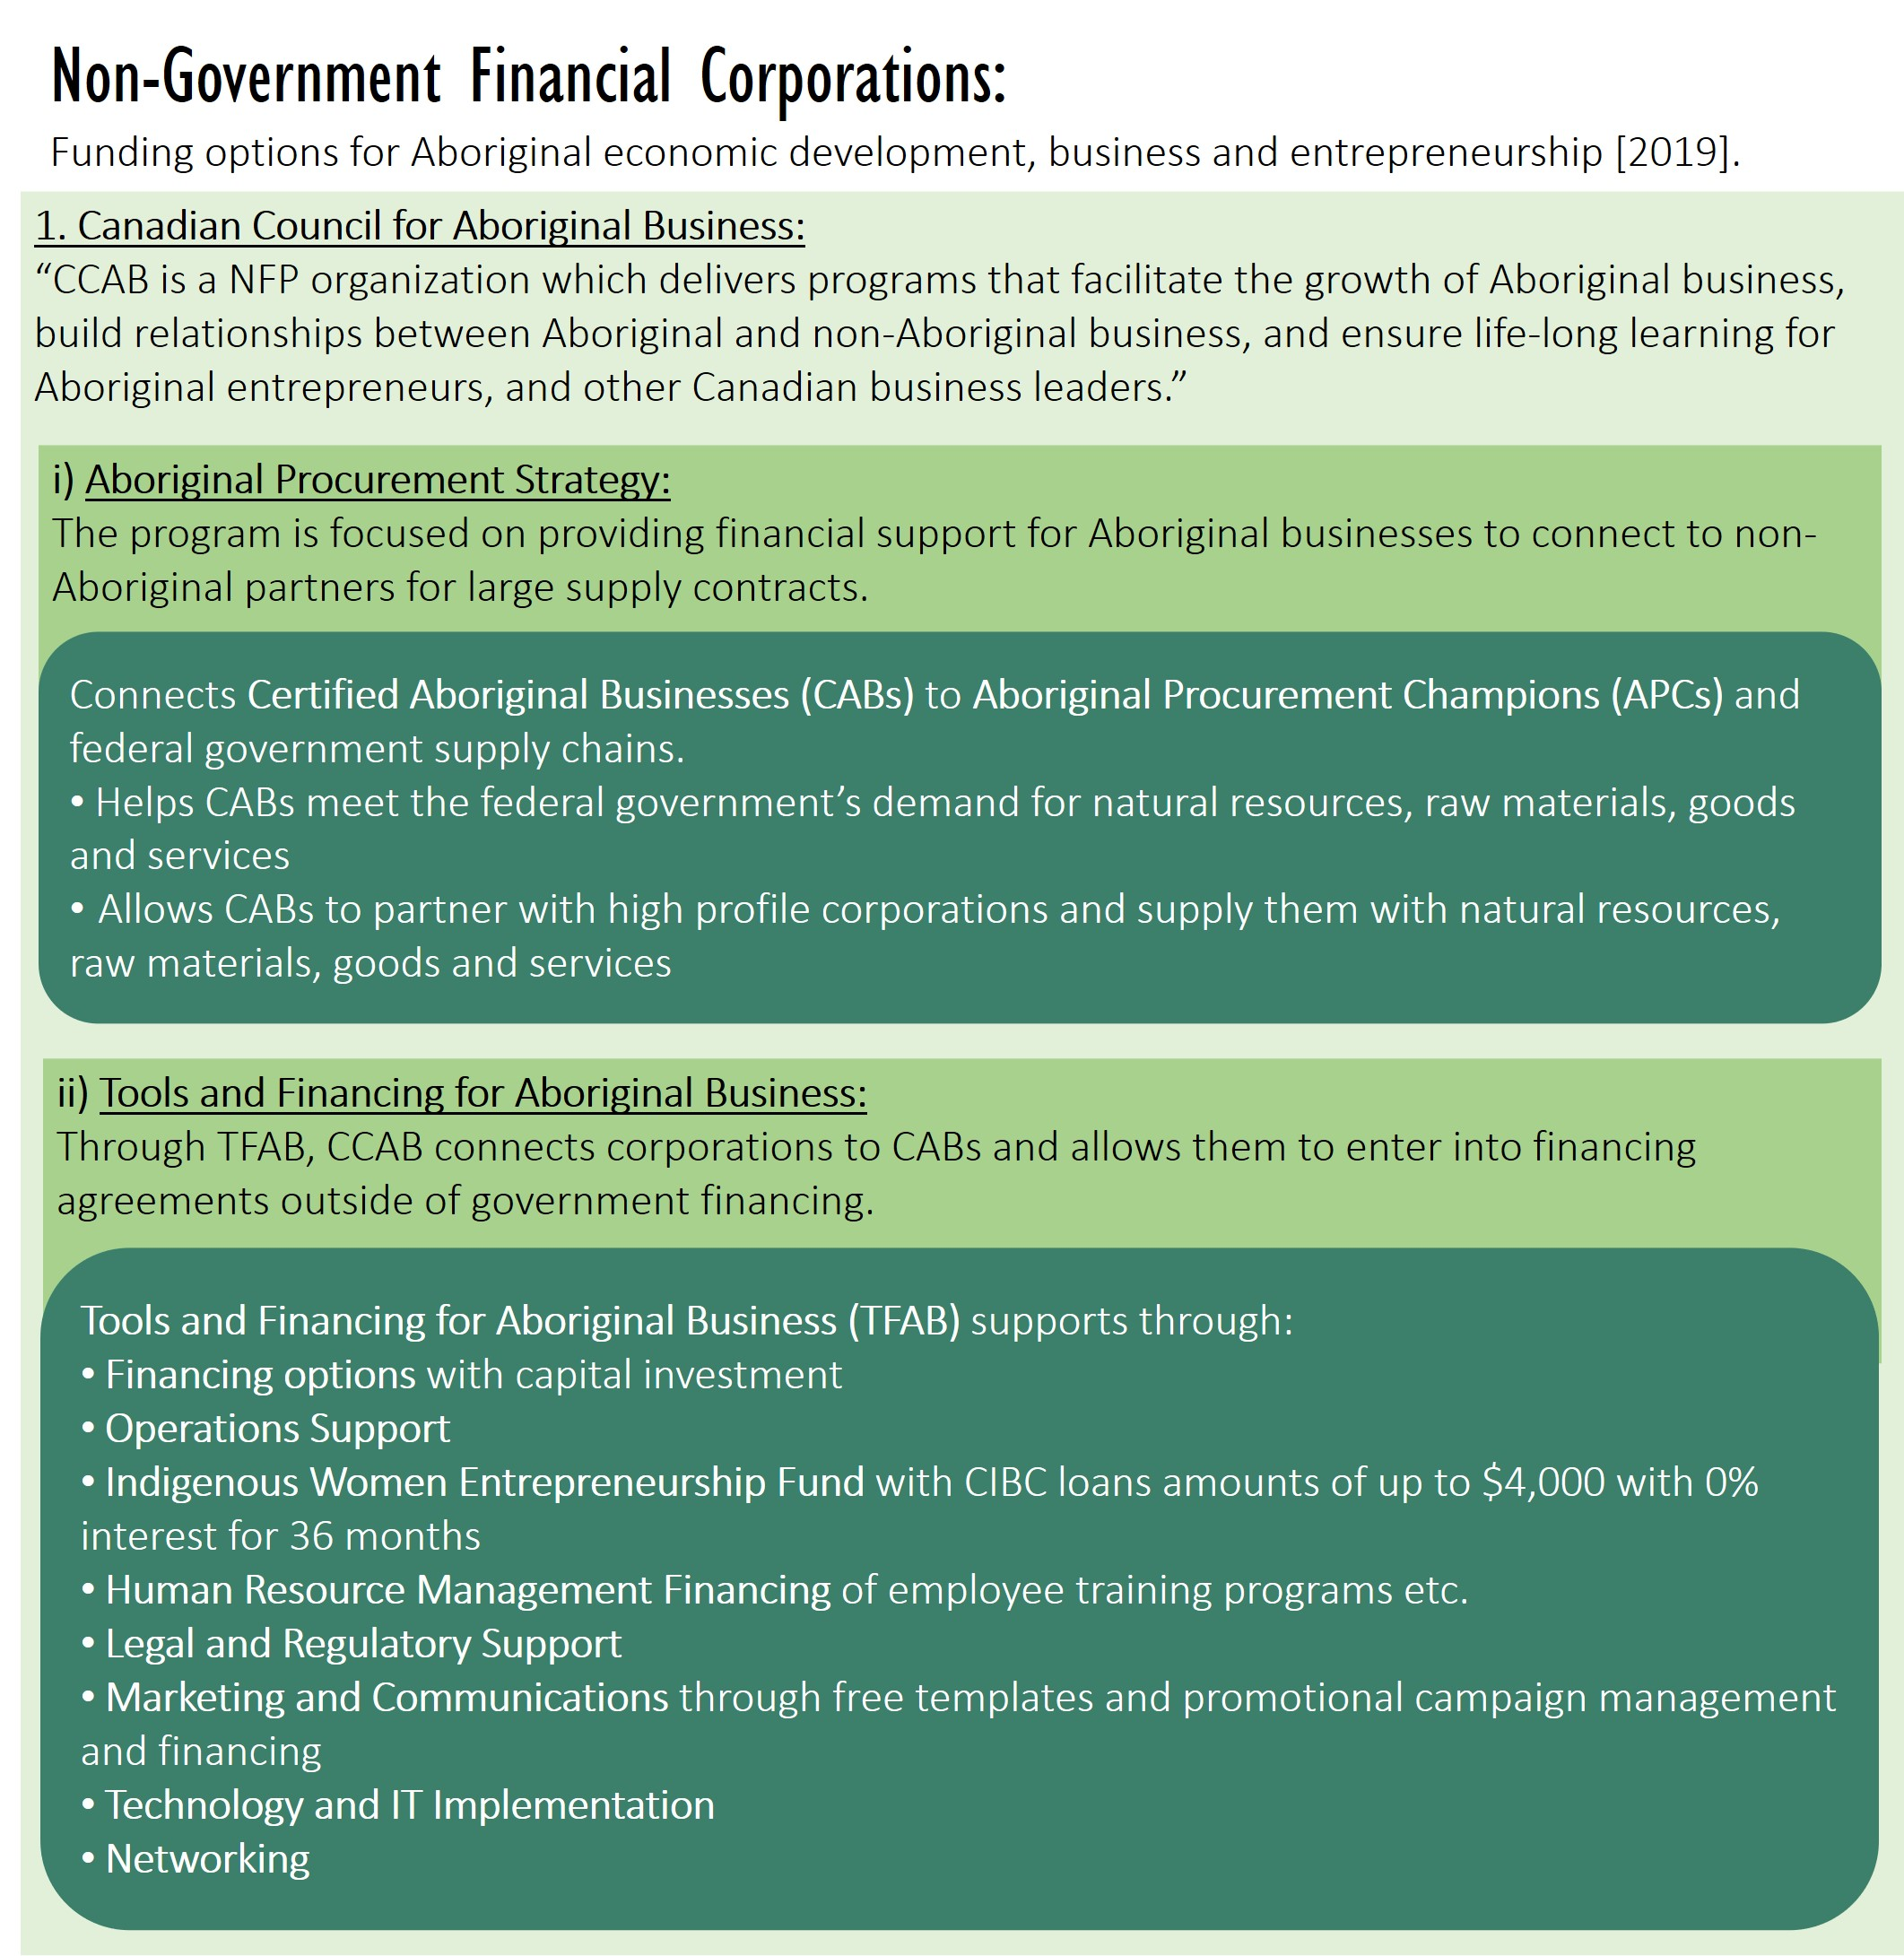 Governmental and Non-governmental Financing Programs (ISC). Analyzed and compiled by: Pauline Galoustian. Source: https://www.aadnc-aandc.gc.ca/eng/1425576051772/1425576078345 [169]